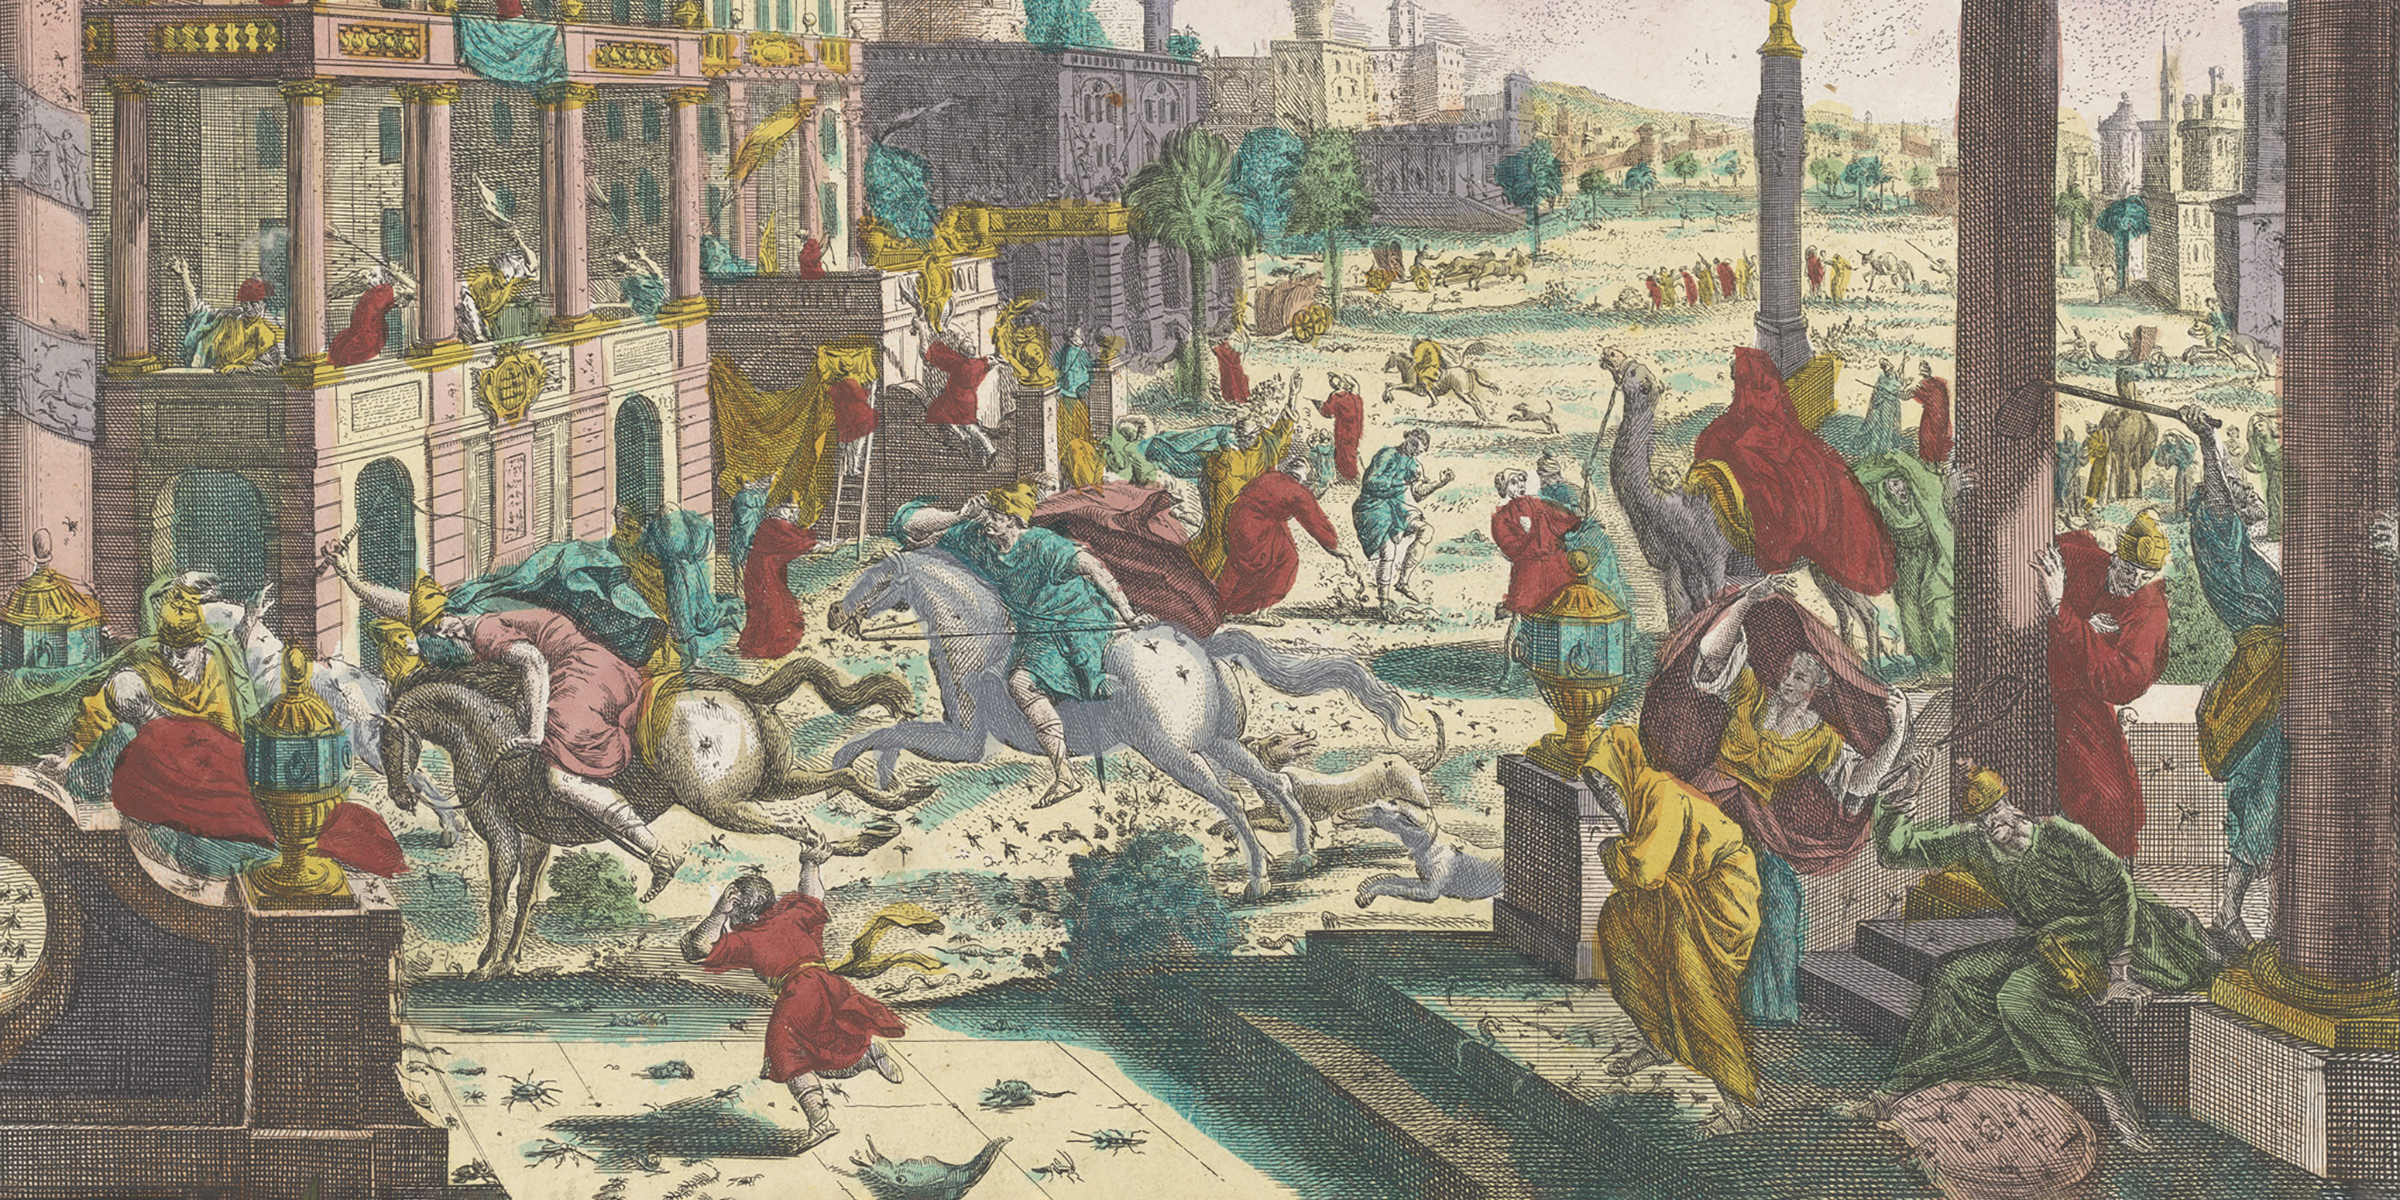 The Fourth Plague of Egypt, anonymous etching printed by the Kaiserlich Franziskische Akademie, c. 1779